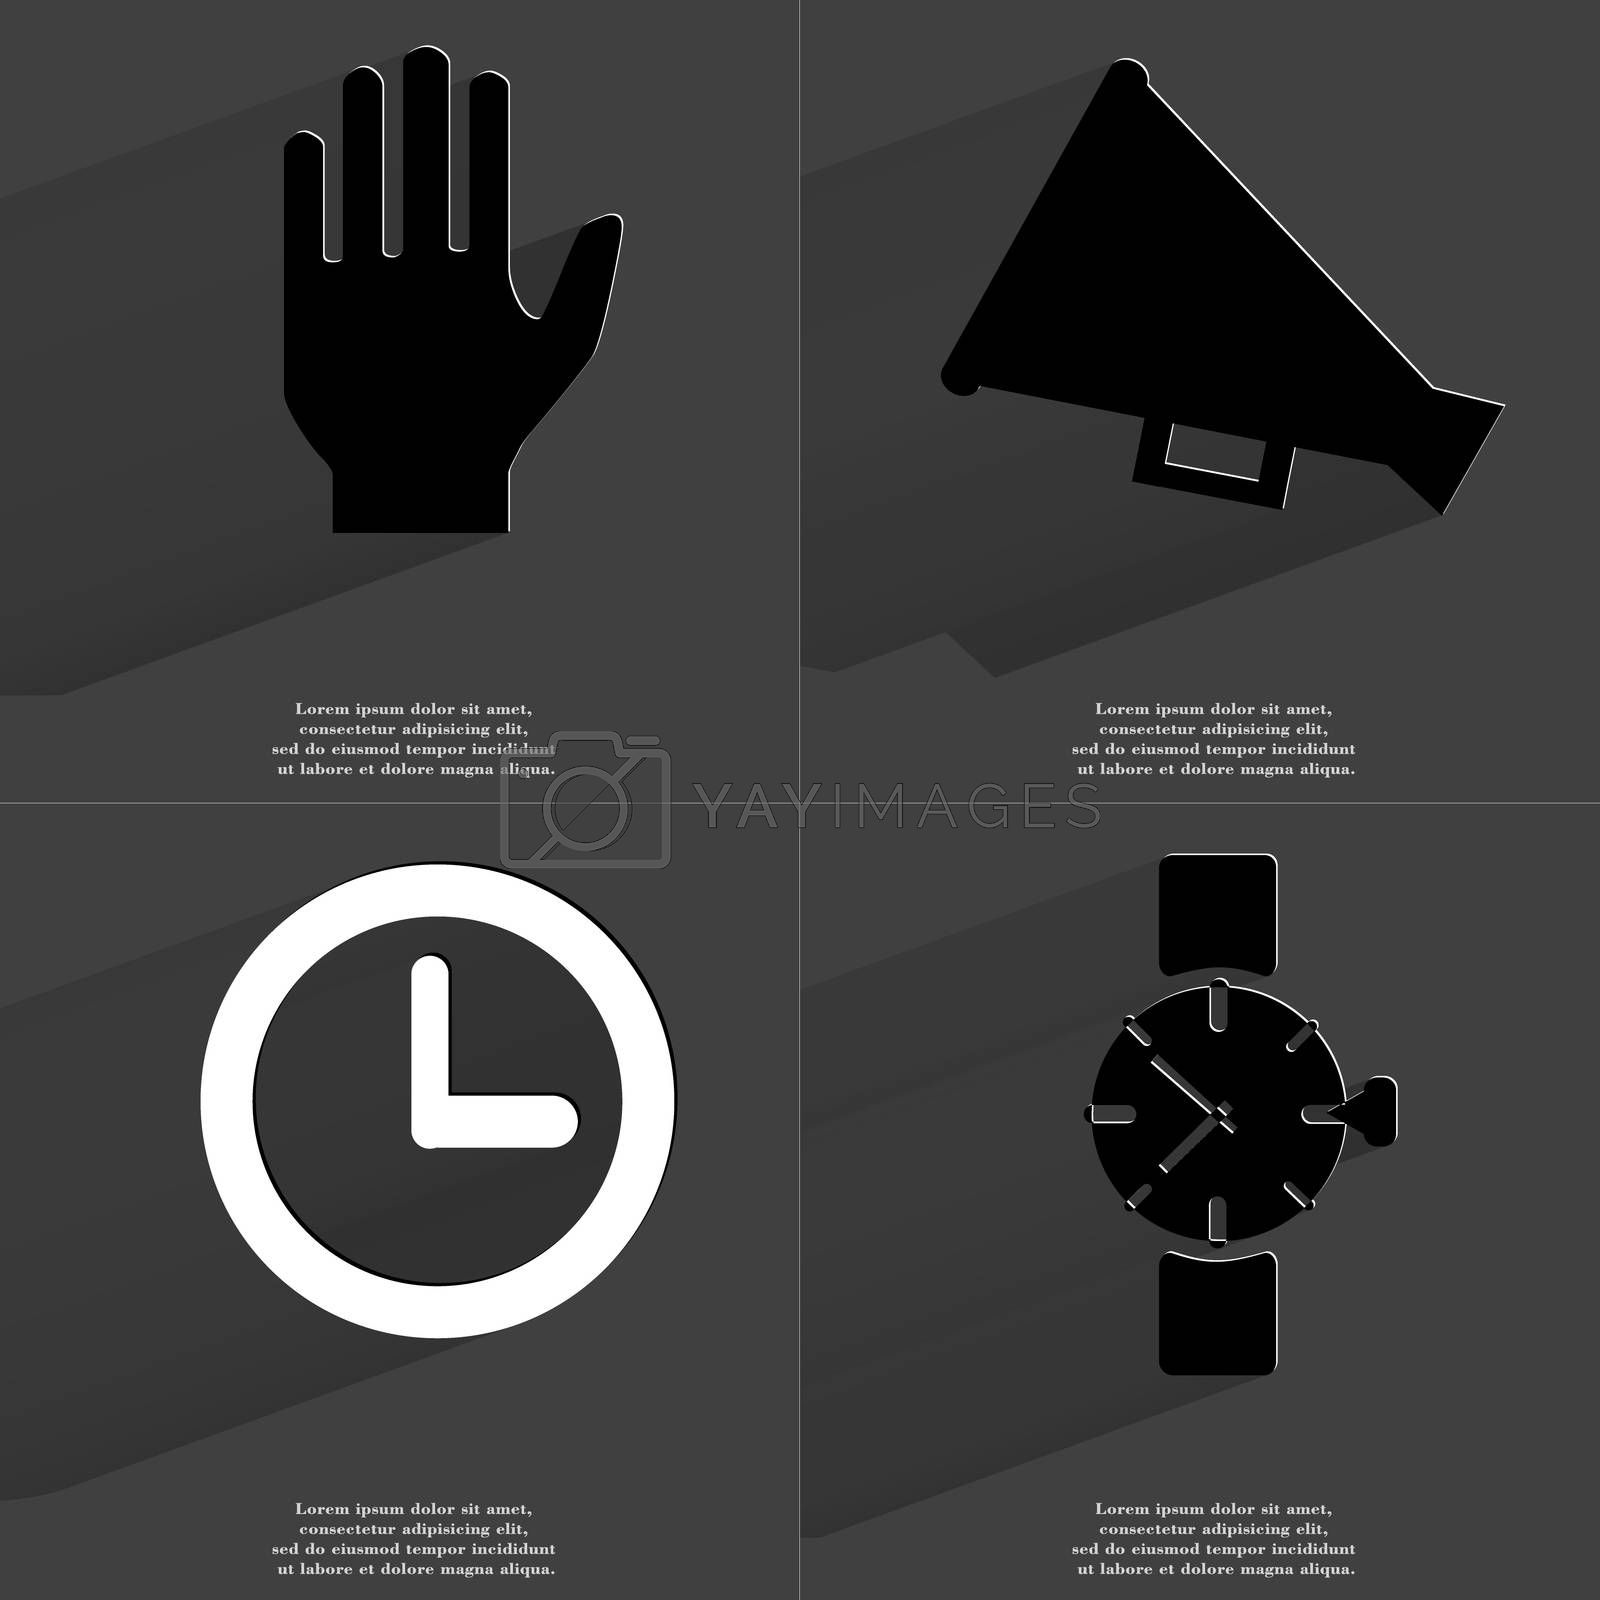 Royalty free image of Hand, Megaphone, Clock, Wrist watch. Symbols with long shadow. Flat design by serhii_lohvyniuk